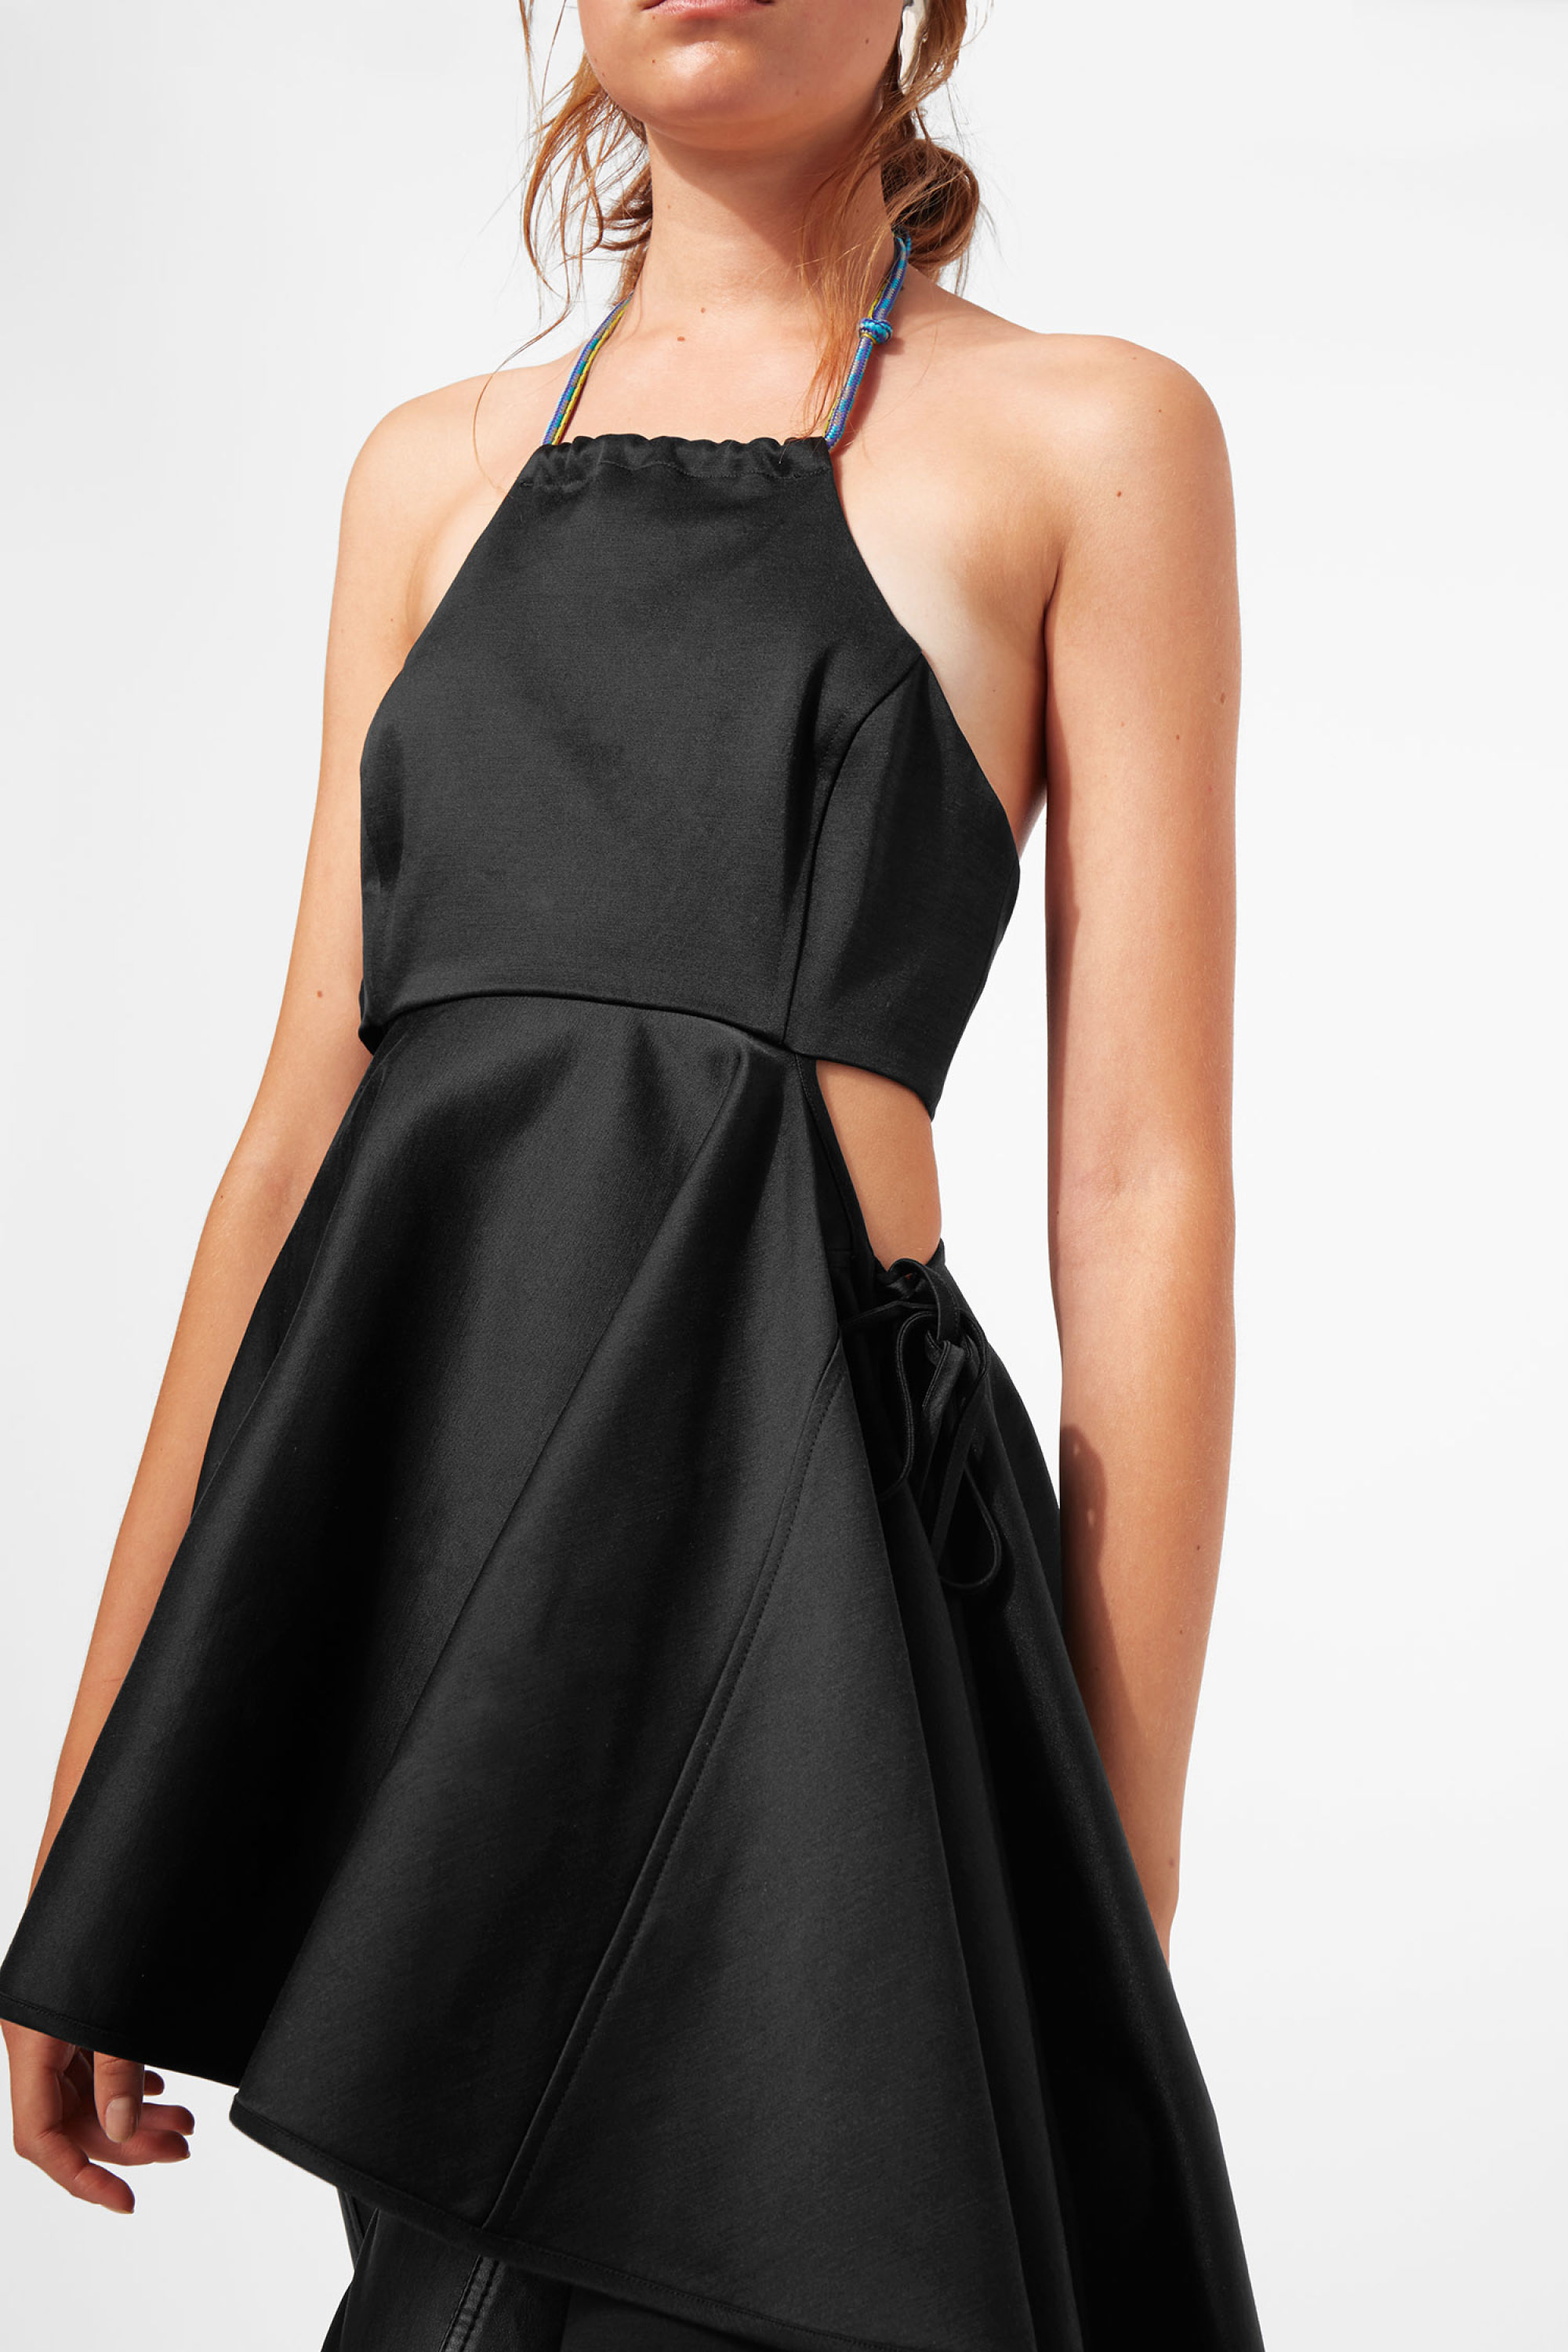 Best Party Dresses The Look Edit Of The High Street